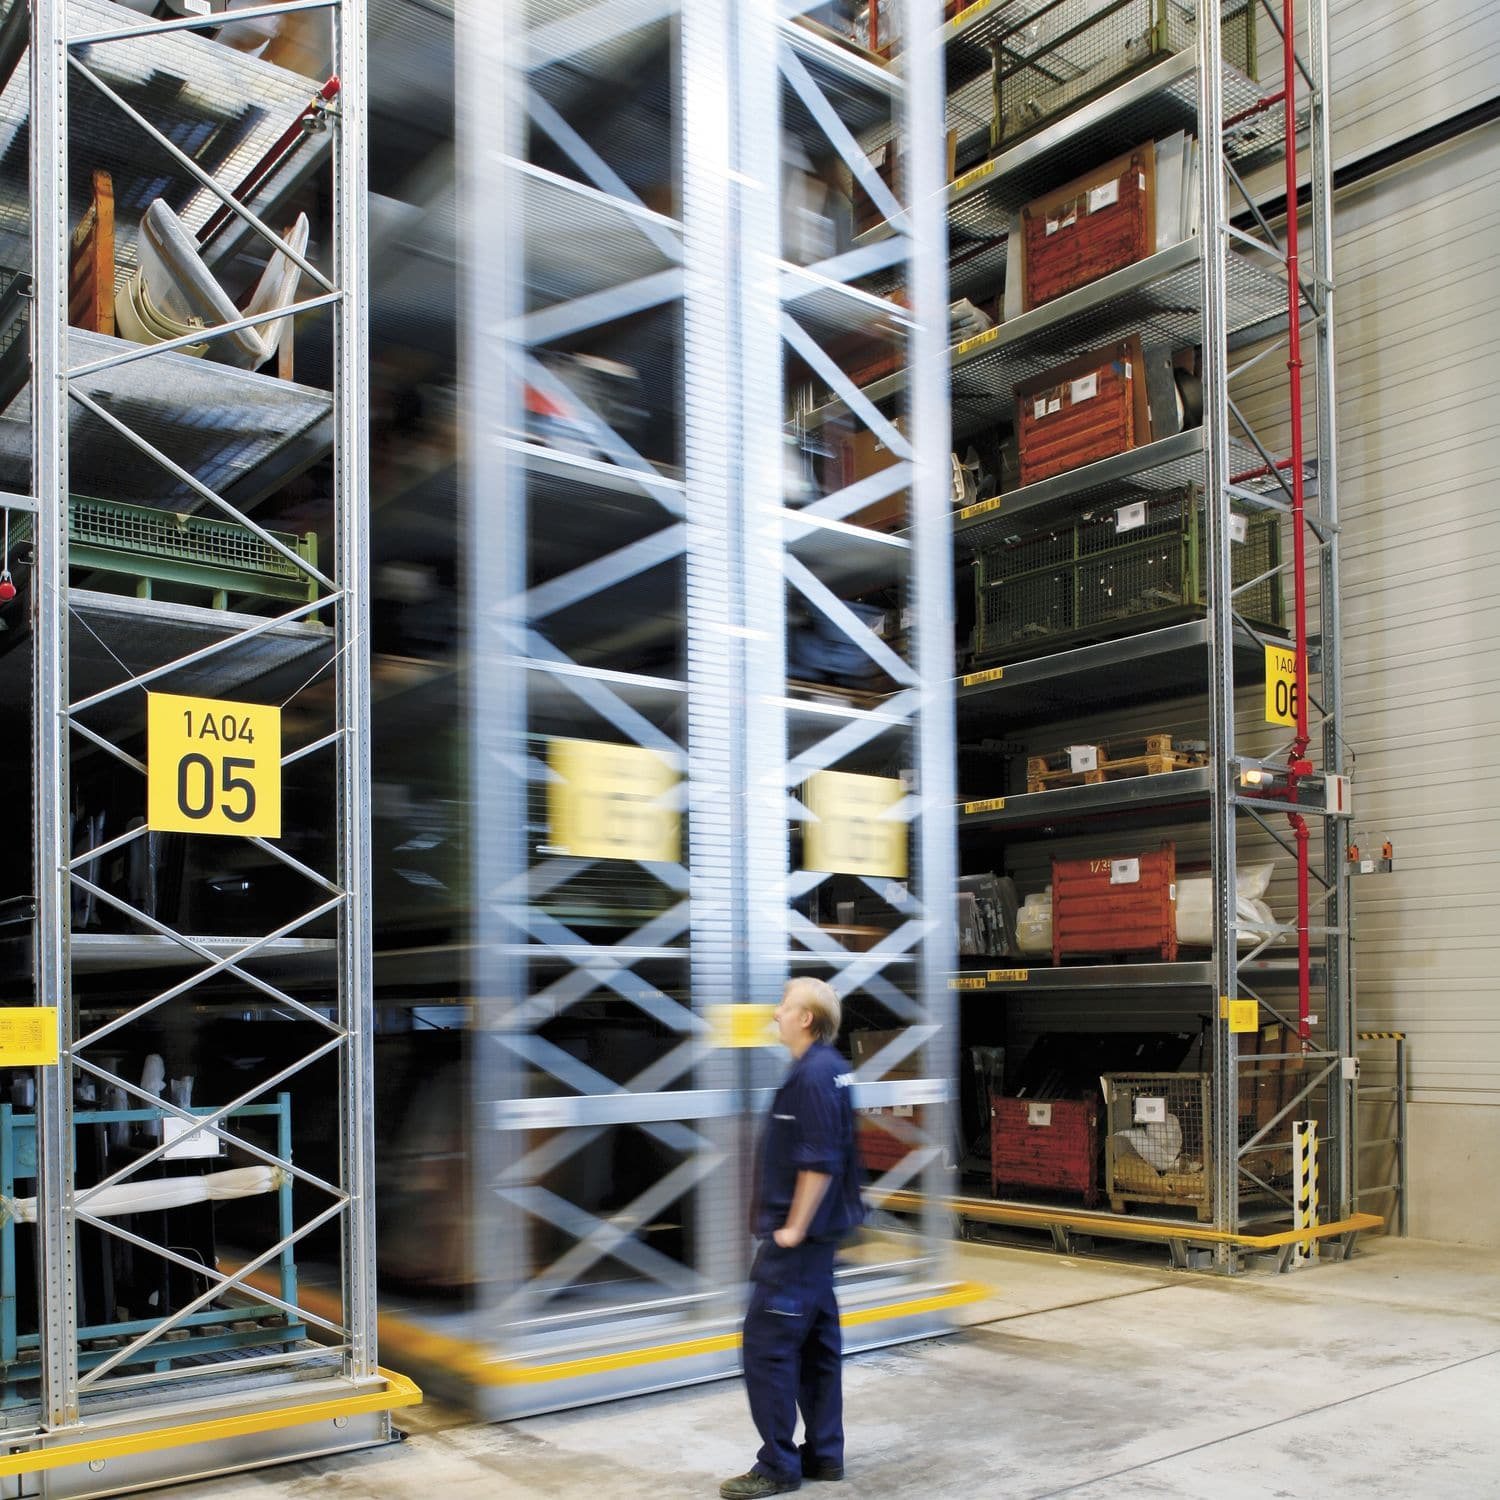 Pallet Shelving Storage Warehouse For Heavy Loads Mobile Movo Mobile Racking Dexion